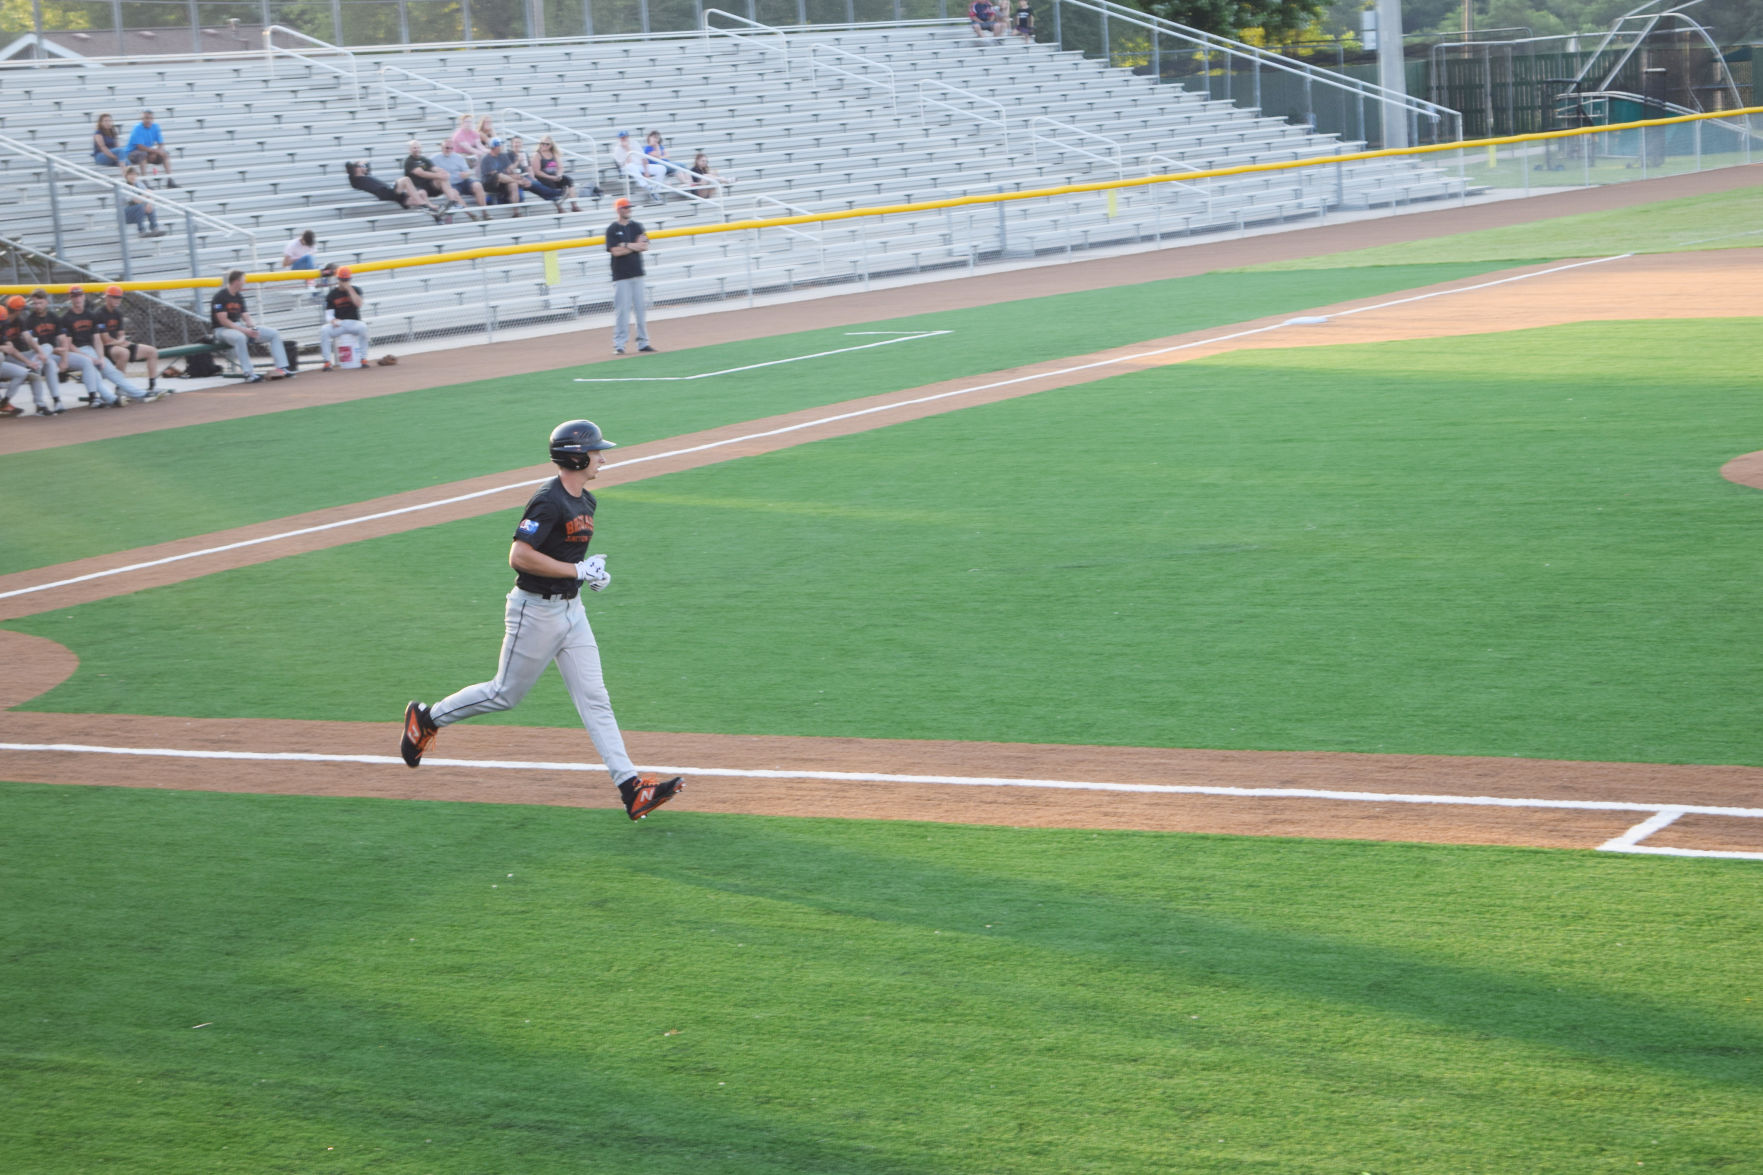 Fireworks on display as JC gets second straight win against Barn Baseball Academy